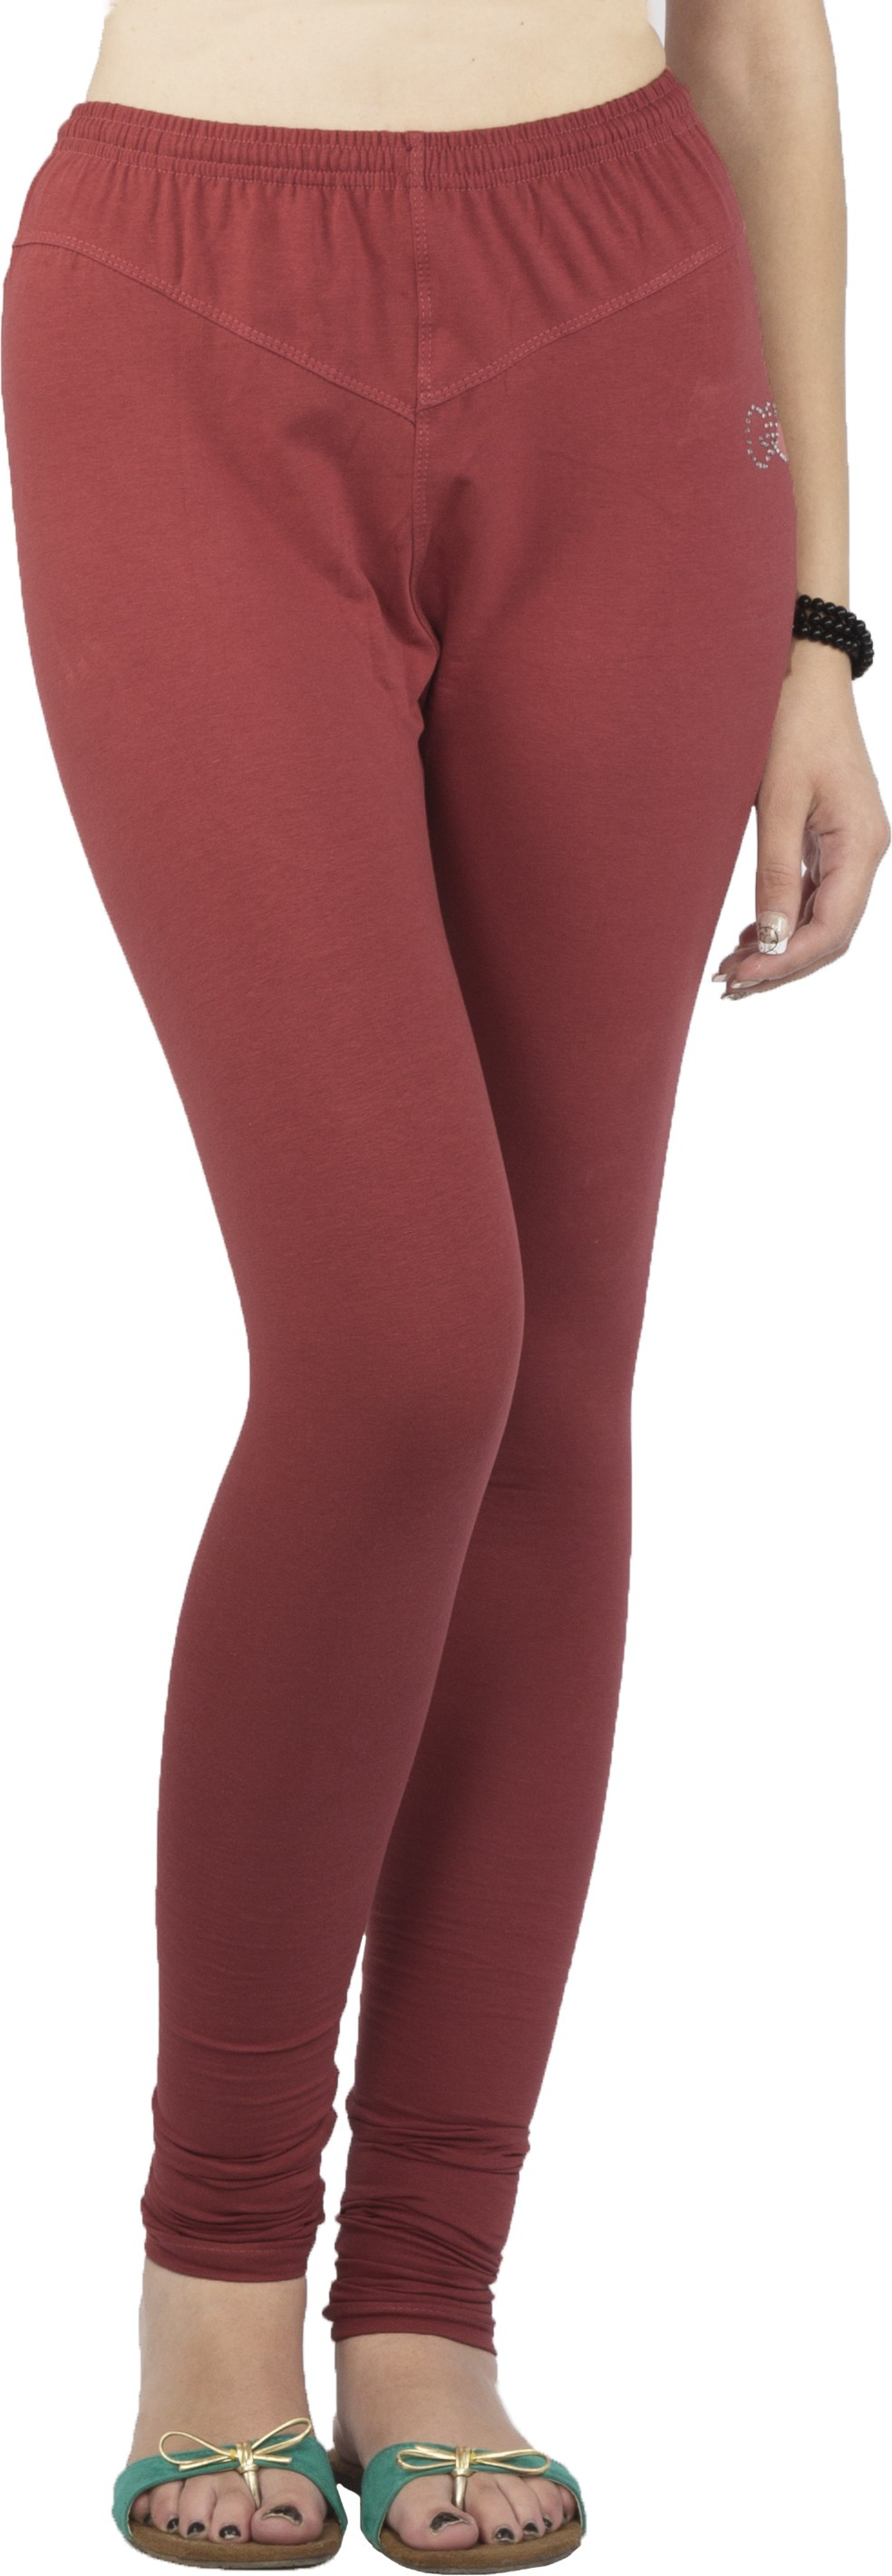 Jublee Womens Brown Leggings